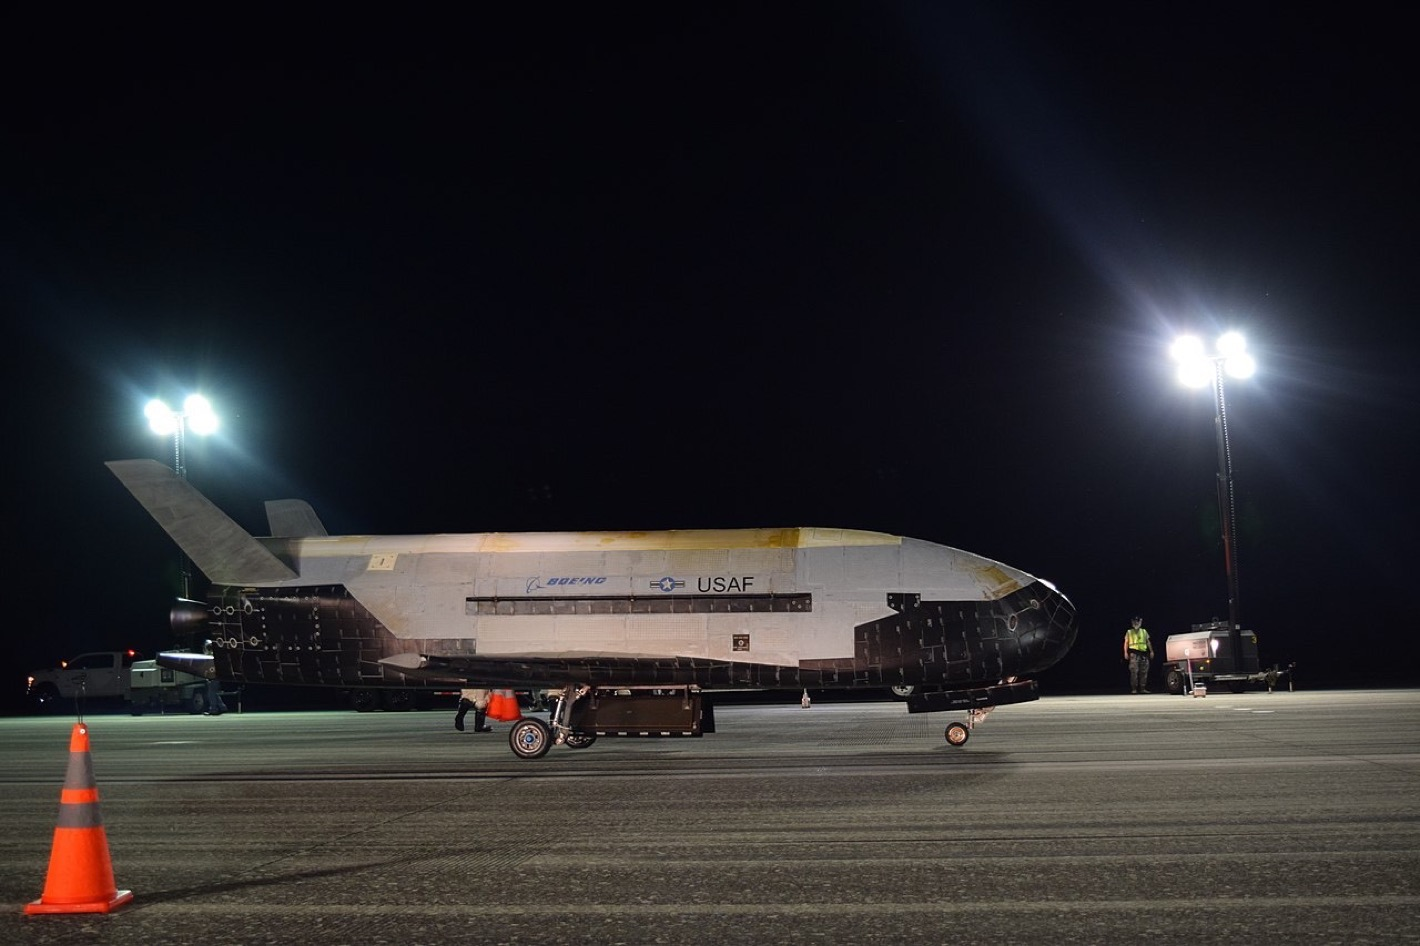 The Air Force's X-37B Orbital Test Vehicle Mission 5 successfully landed at NASA's Kennedy Space Center Shuttle Landing Facility Oct. 27, 2019. The X-37B OTV is an experimental test program to demonstrate technologies for a reliable, reusable, unmanned space test platform for the U.S. Air Force.